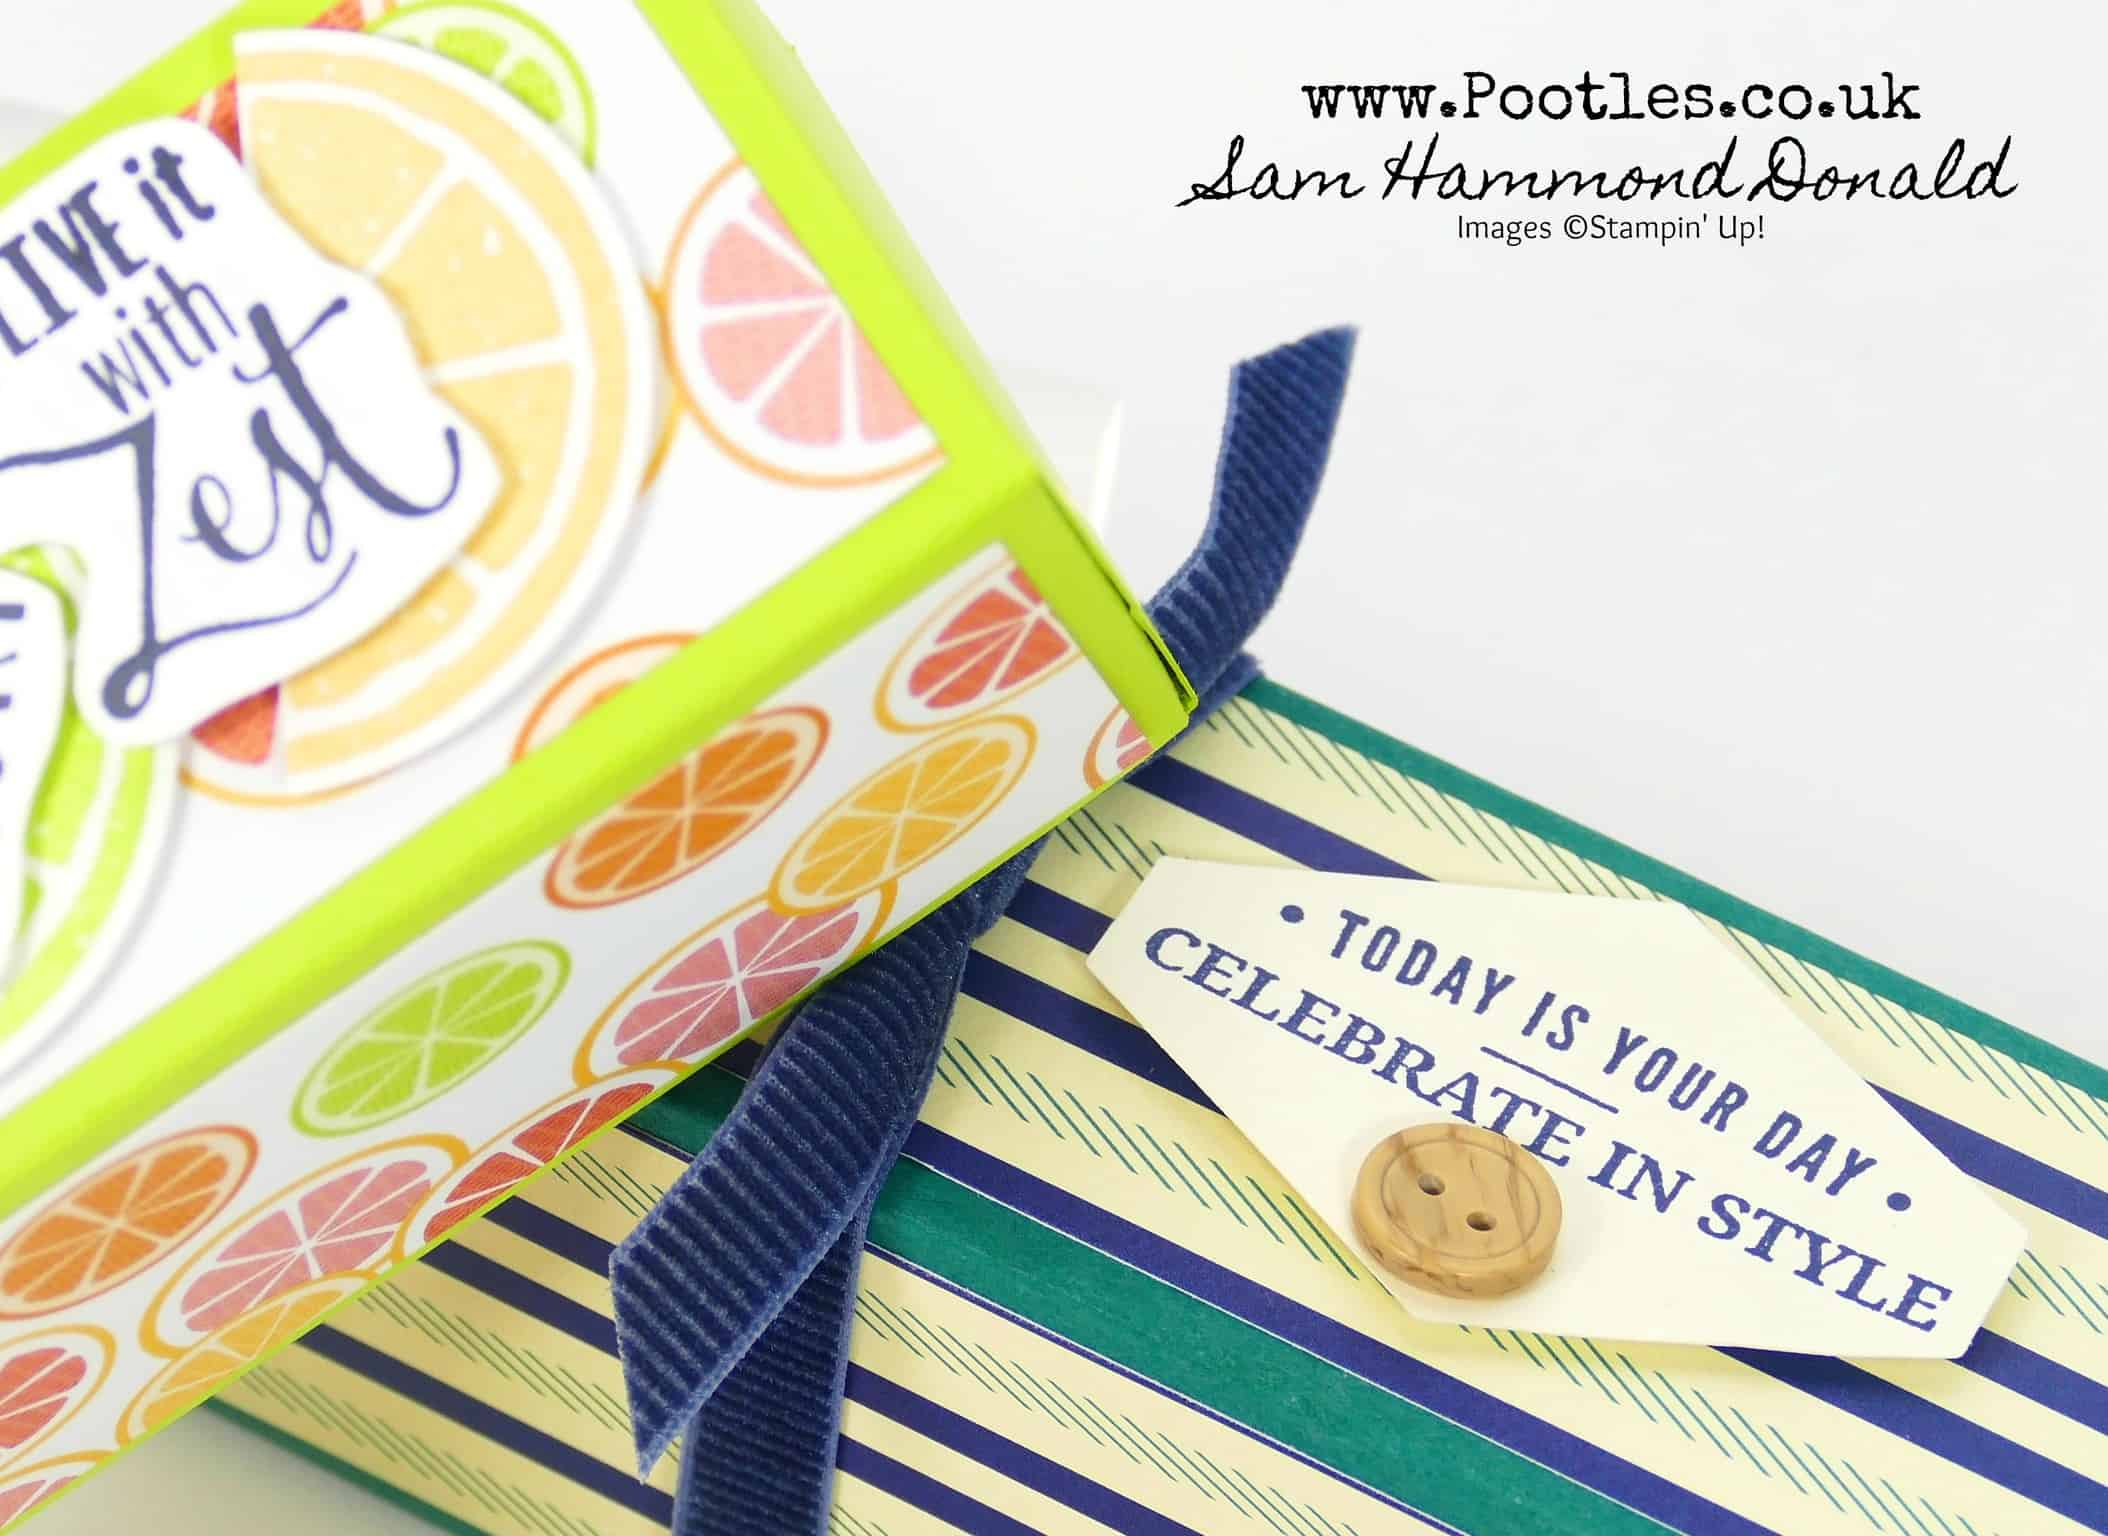 Fold Flat Easy Stick Box Tutorial using Stampin' Up! Supplies